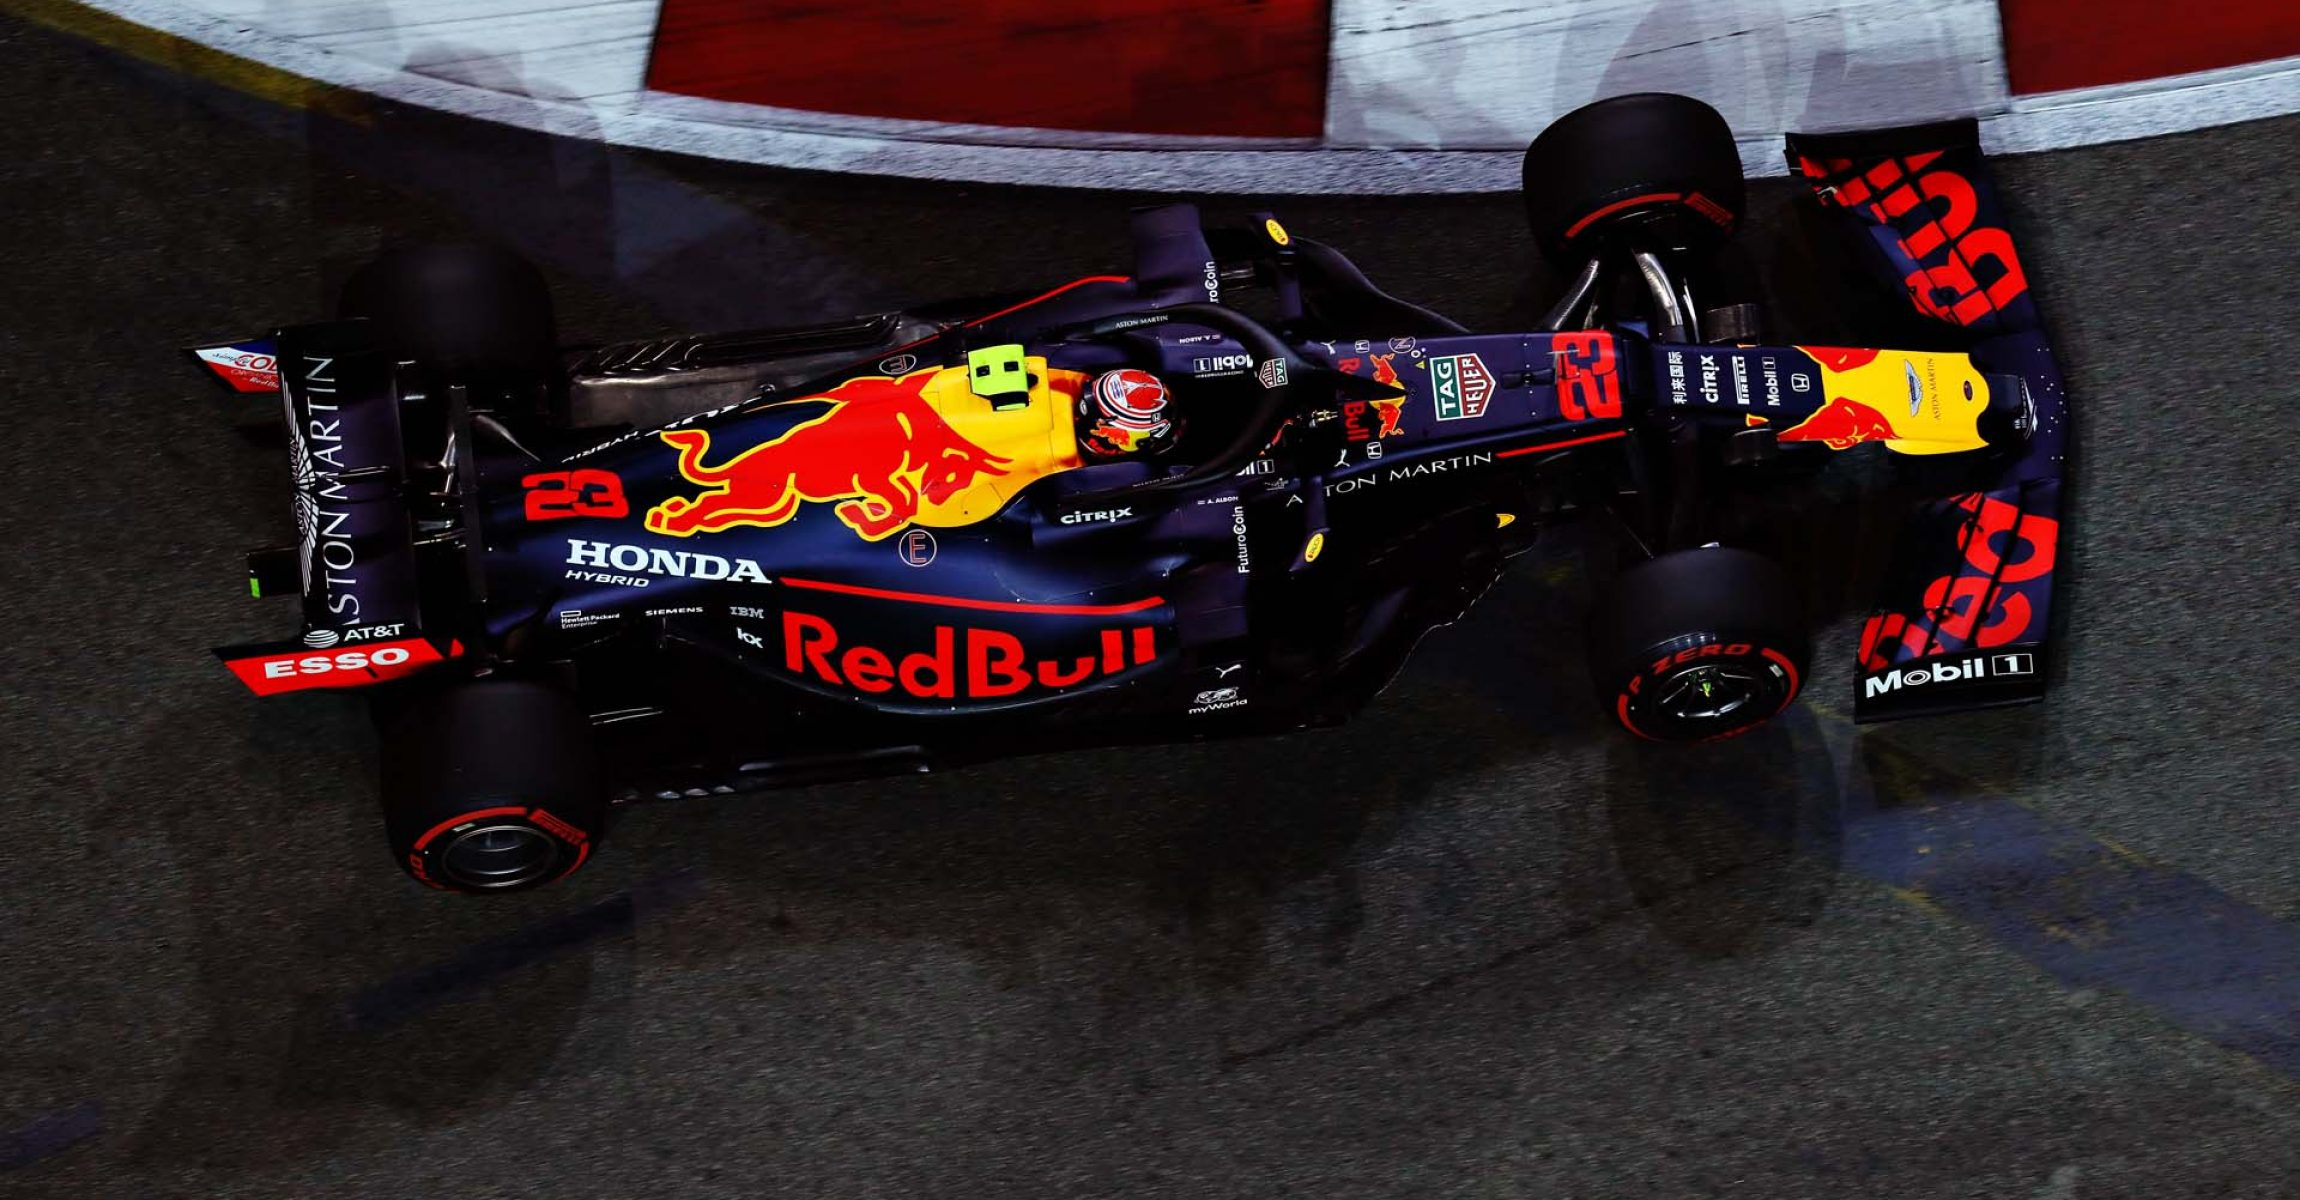 SINGAPORE, SINGAPORE - SEPTEMBER 20: Alexander Albon of Thailand driving the (23) Aston Martin Red Bull Racing RB15 on track during practice for the F1 Grand Prix of Singapore at Marina Bay Street Circuit on September 20, 2019 in Singapore. (Photo by Mark Thompson/Getty Images) // Getty Images / Red Bull Content Pool  // AP-21MNUJF1N2111 // Usage for editorial use only //